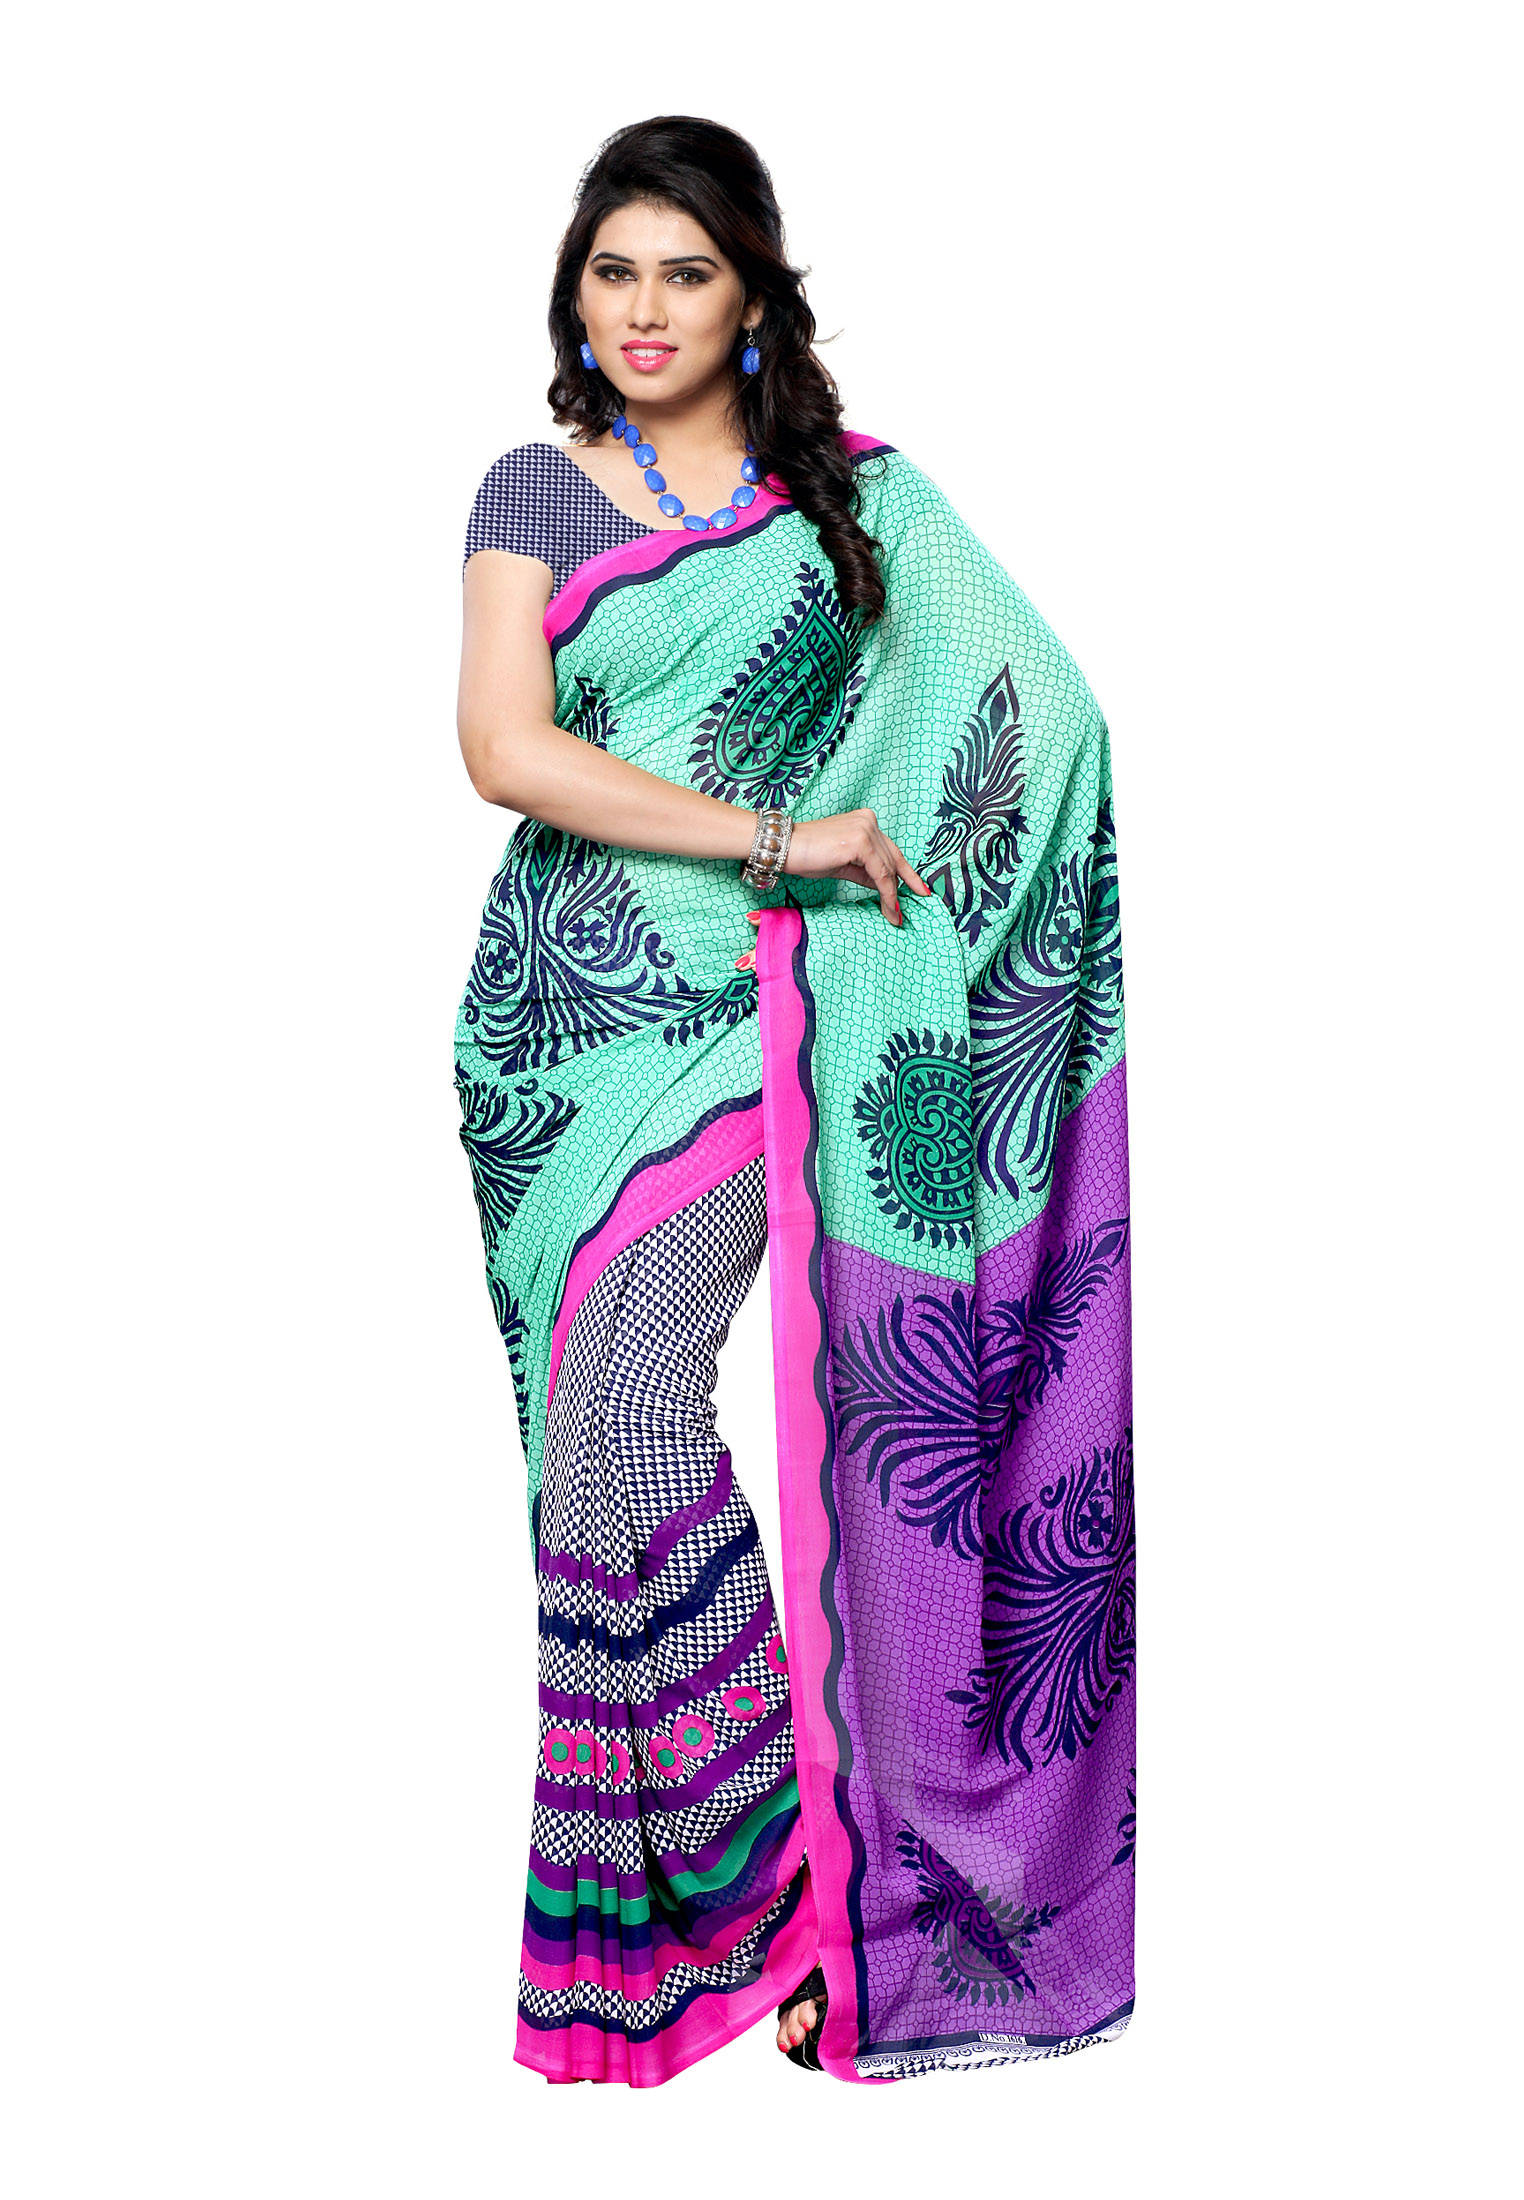 upto 65 off on georgette printed sarees with designer blouse